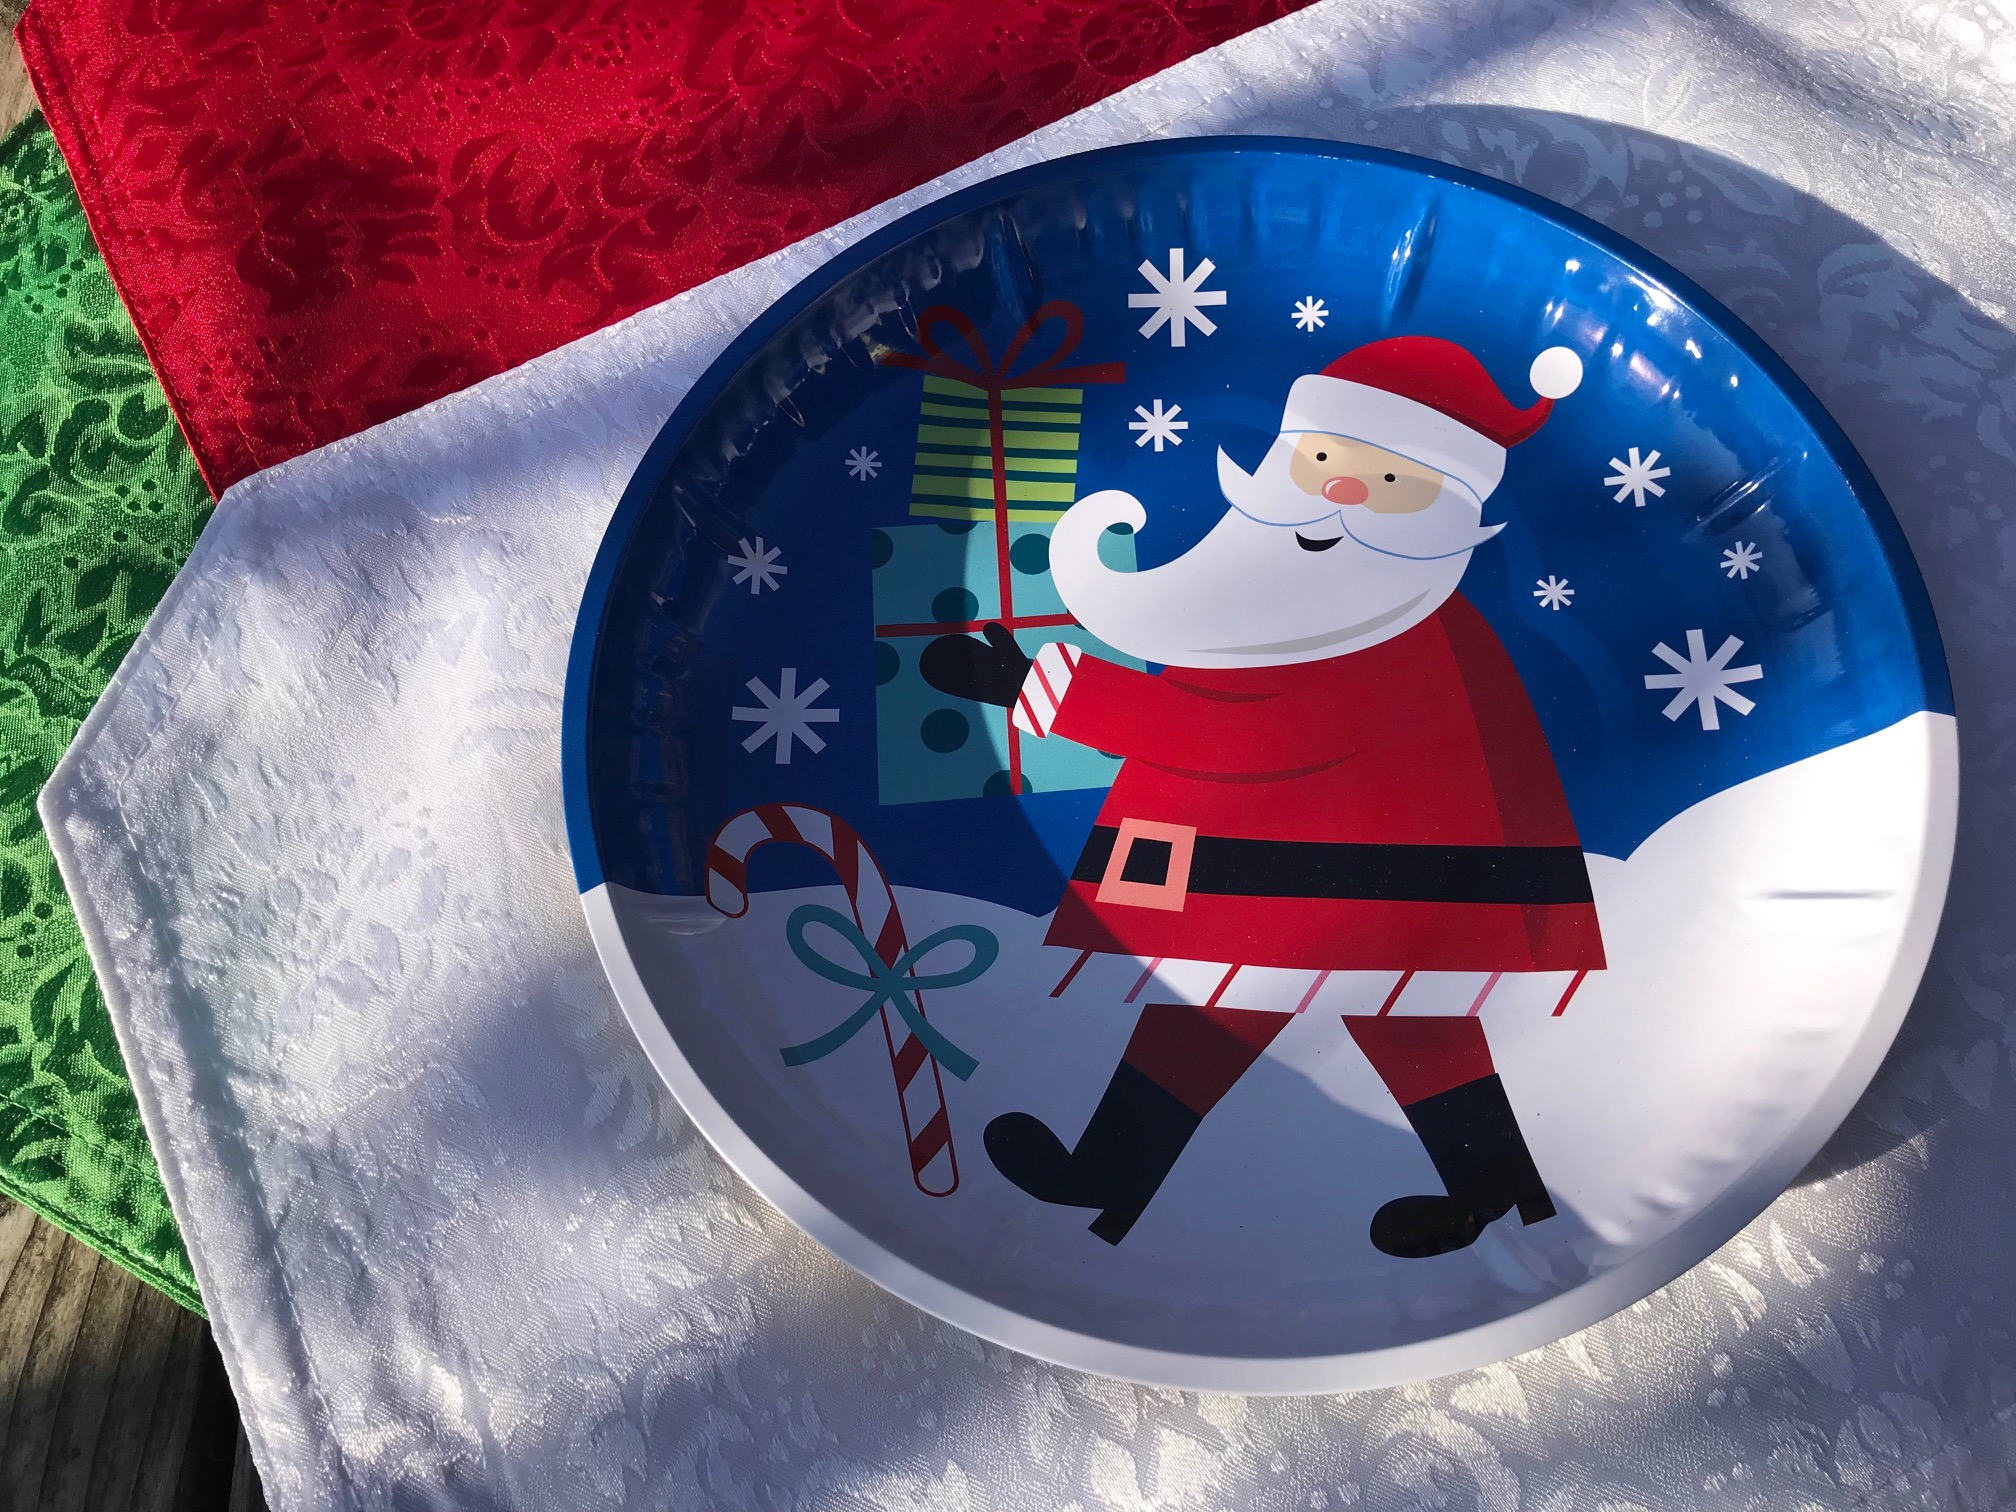 2018 Dollar Store Santa Claus Design Metal Tray / Plate: Lead Free!